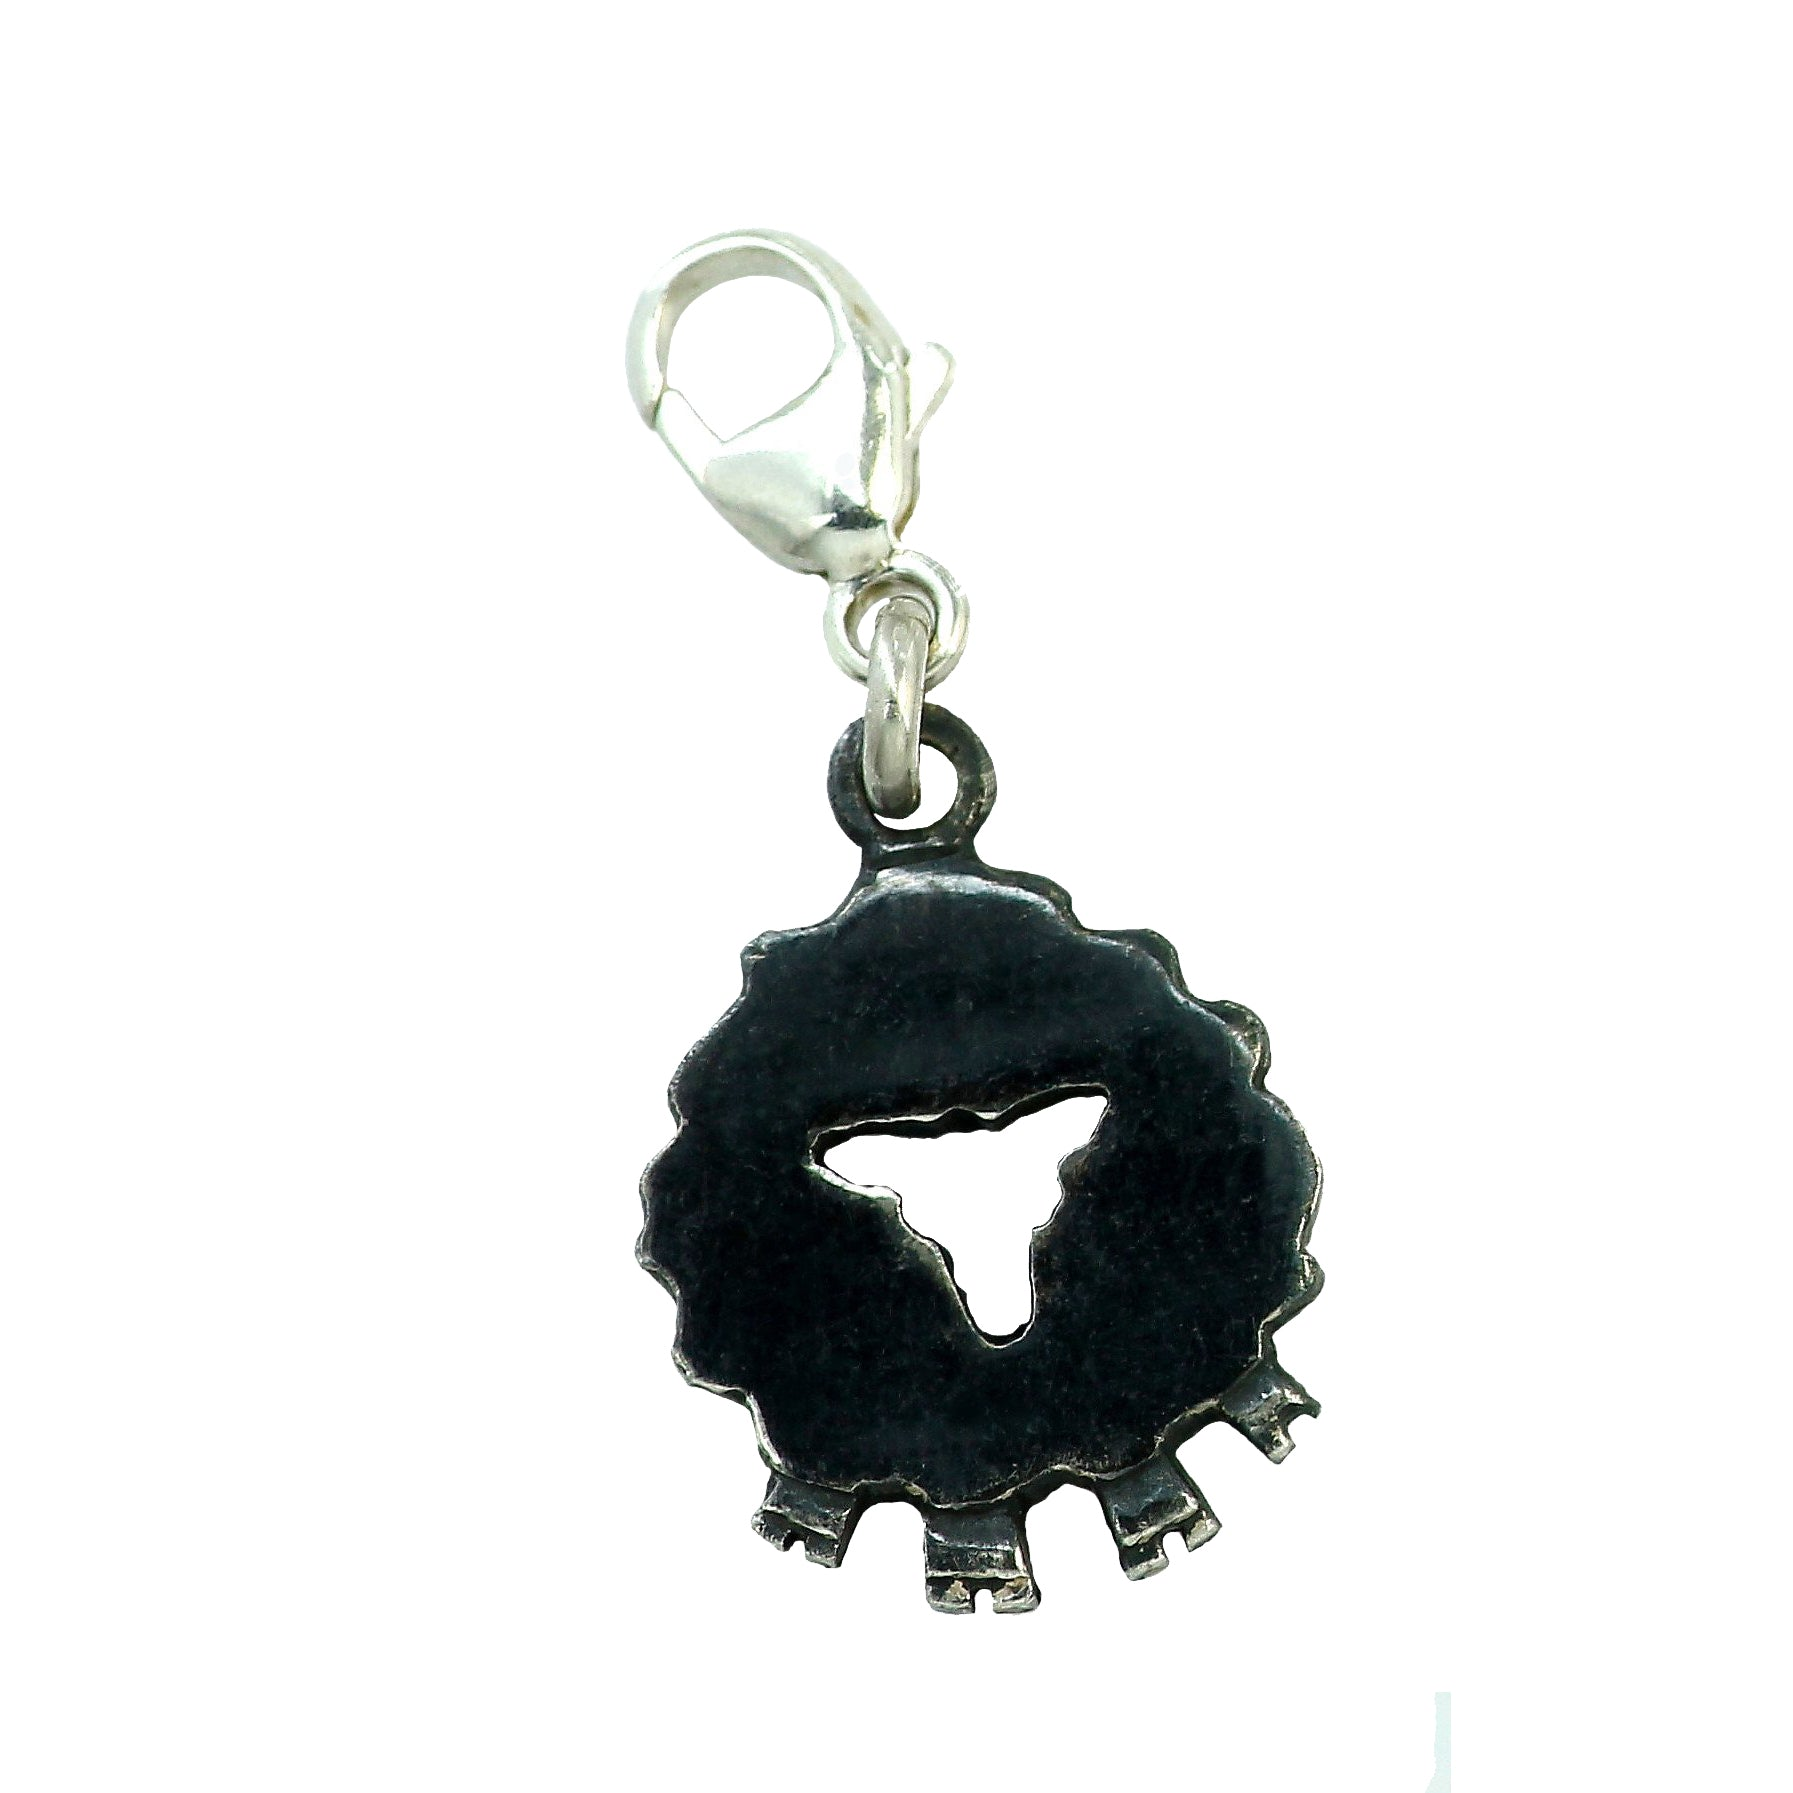 Black Front Face Sheep Charm full of life, handcrafted from sterling silver.